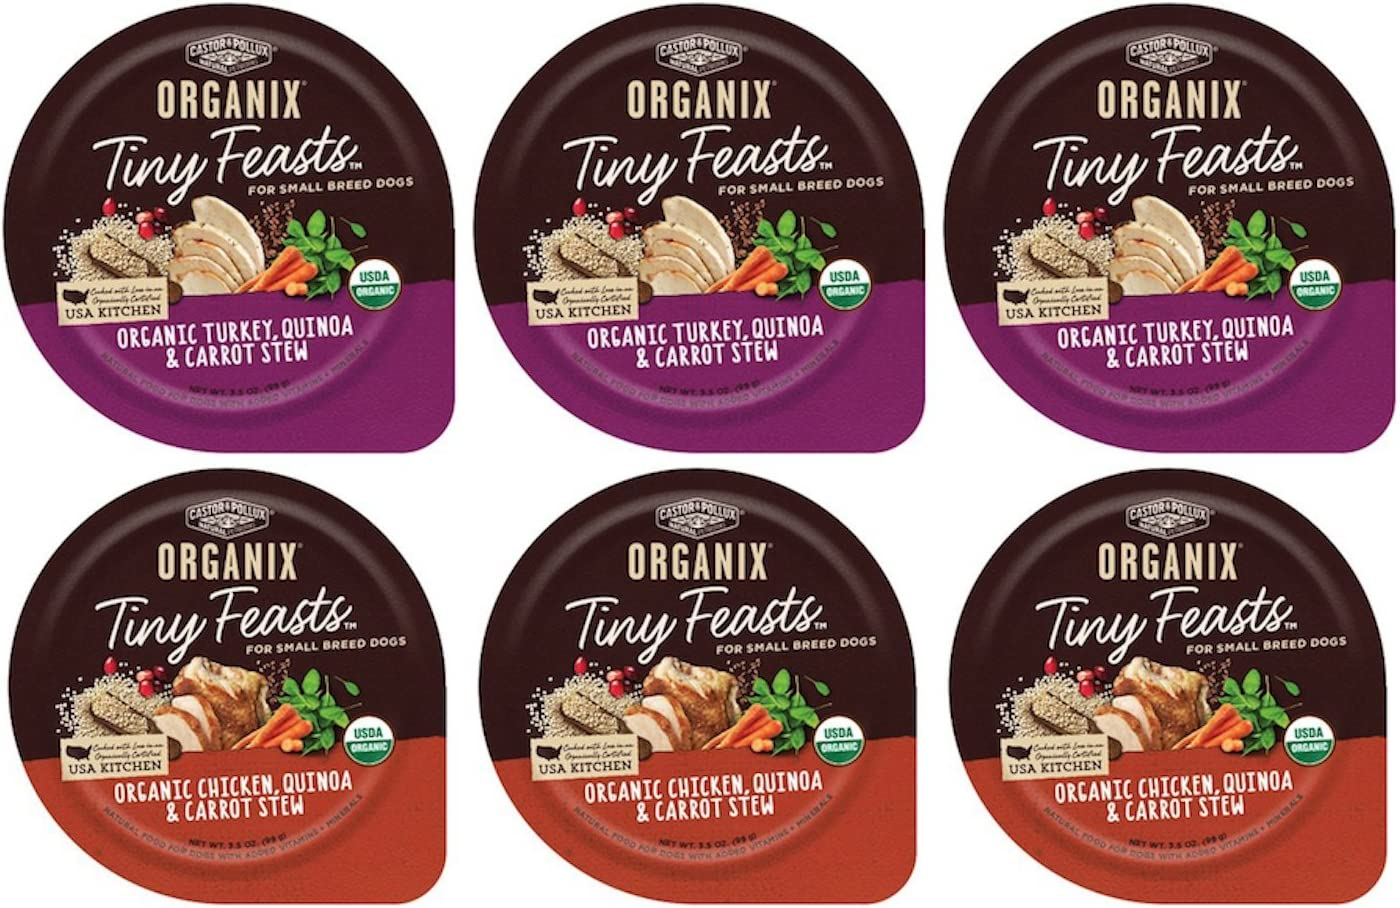 Organix Tiny Feasts Wet Dog Food with Quinoa 2 Flavor Variety Bundle: (3) Organic Chicken, Quinoa & Carrot Stew, (3) Organic Turkey, Quinoa & Carrot Stew, 3.5Oz Each (6 Trays Total)